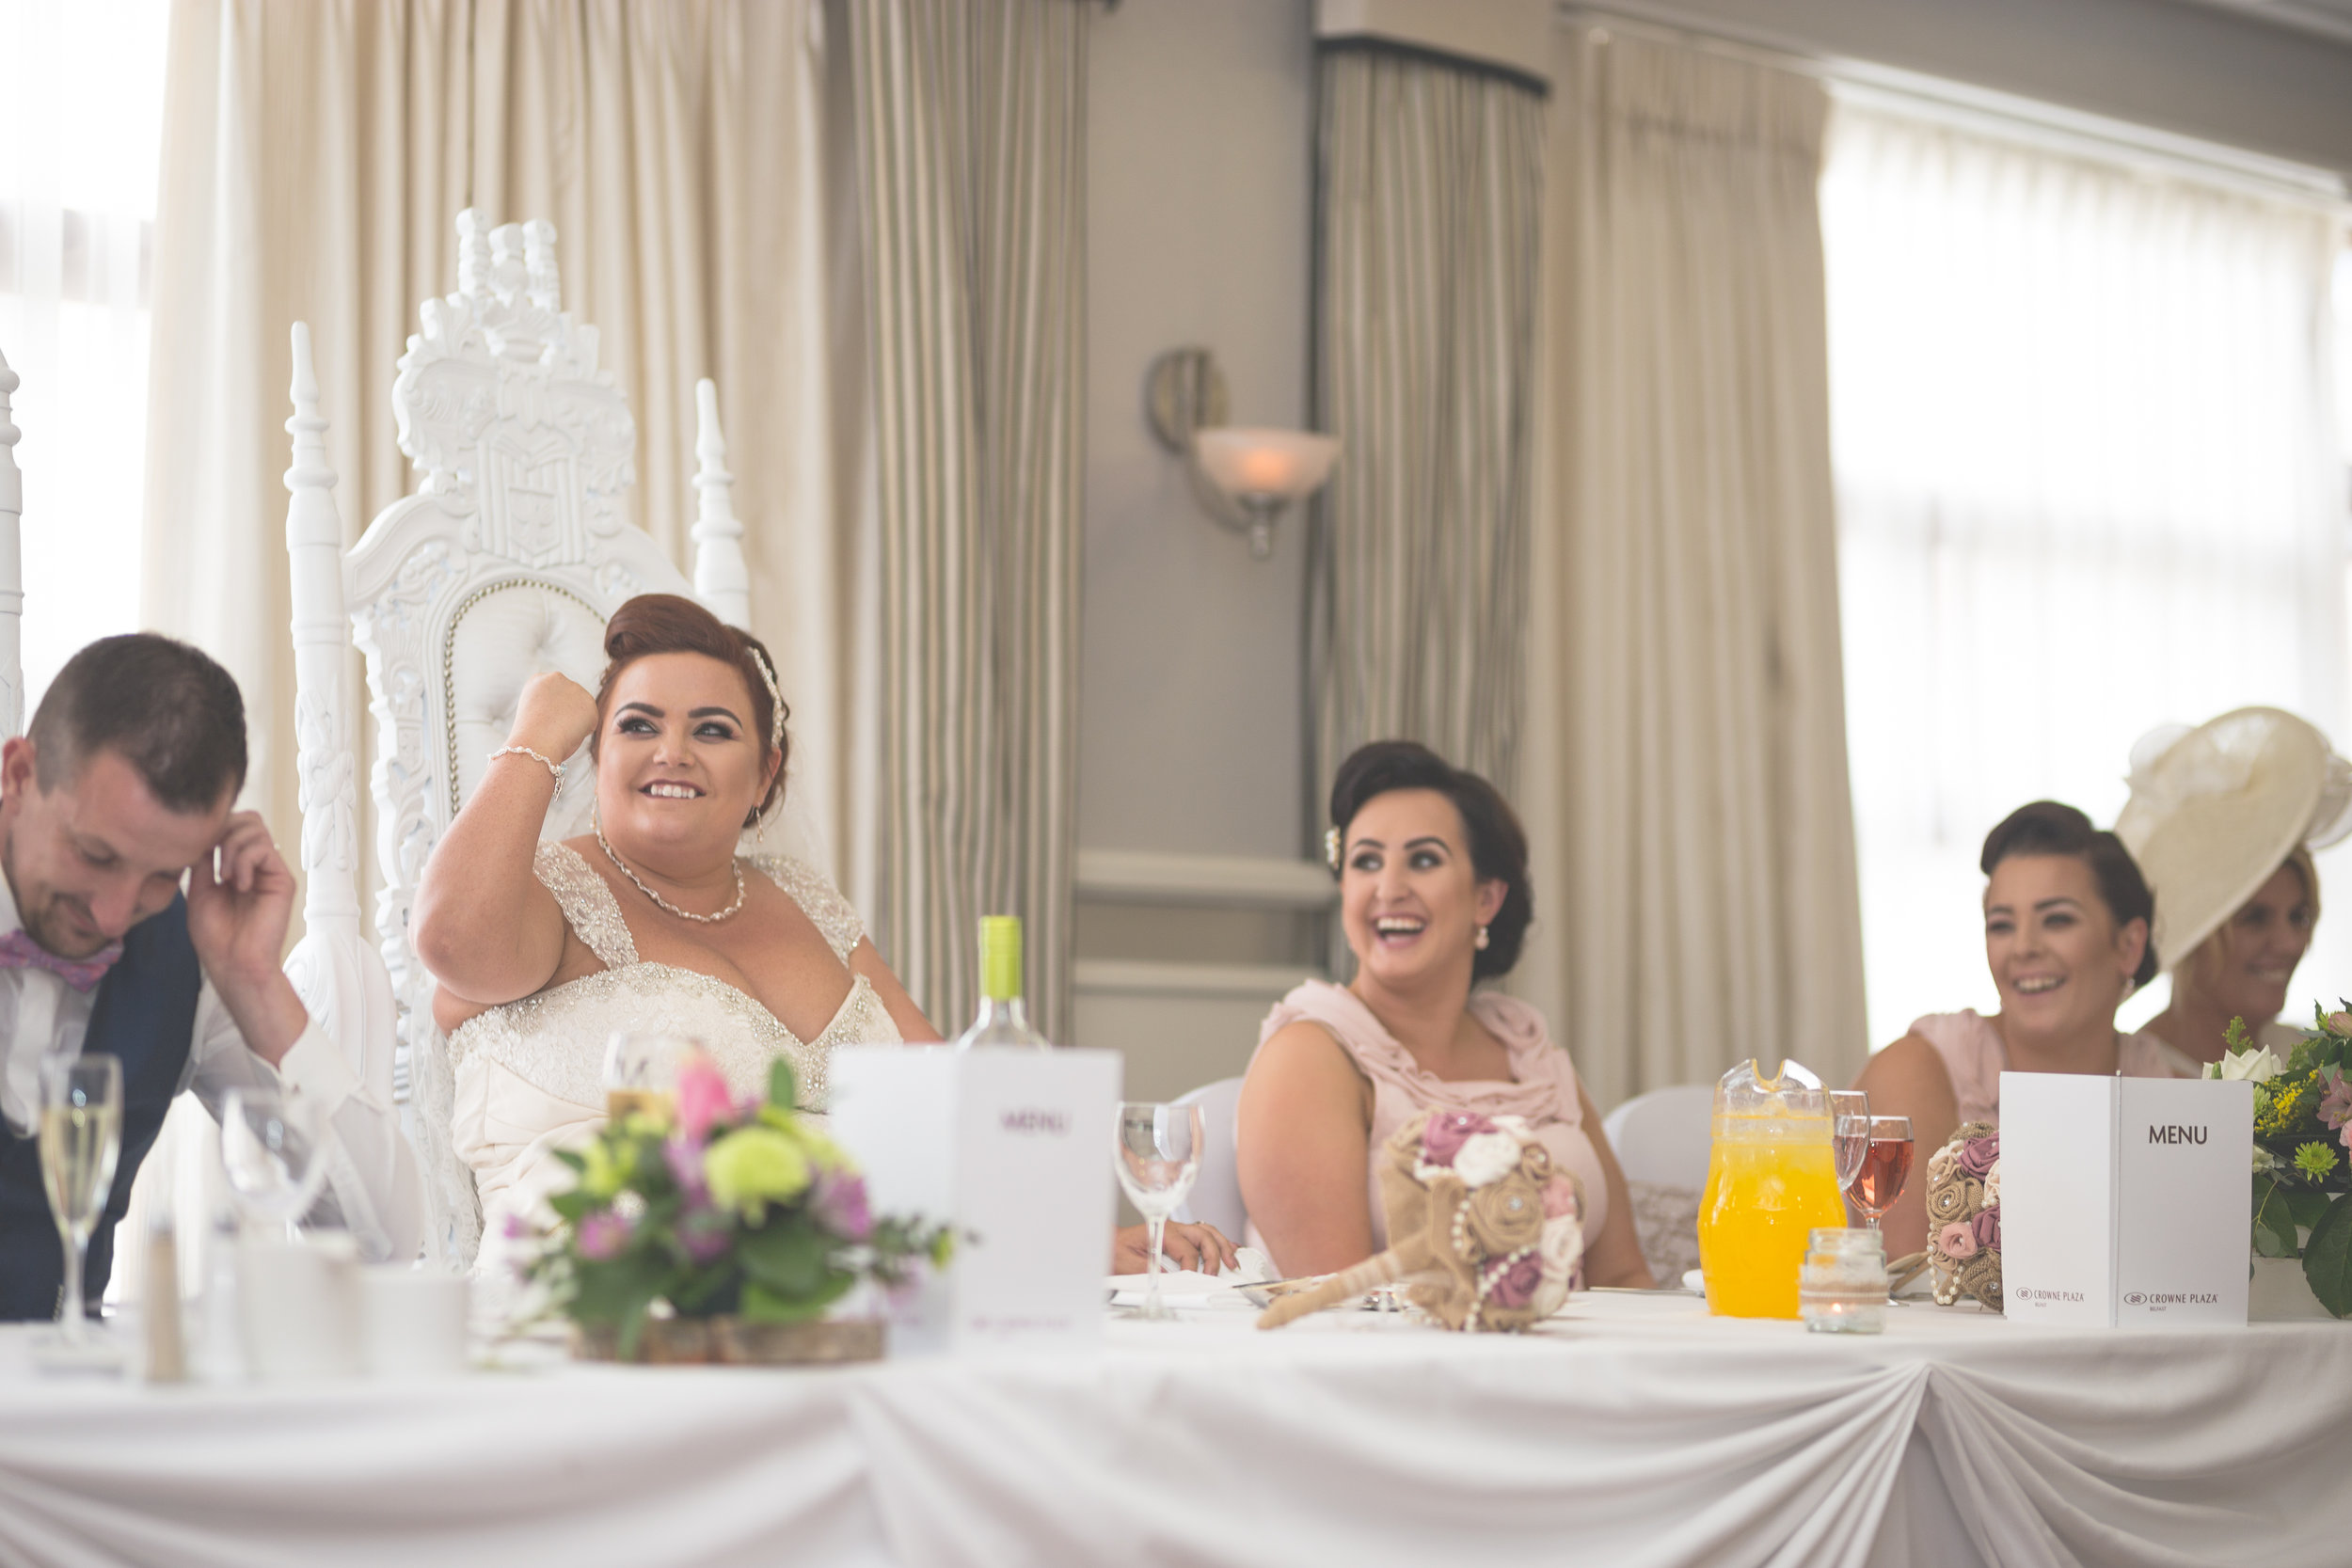 Antoinette & Stephen - Speeches | Brian McEwan Photography | Wedding Photographer Northern Ireland 40.jpg